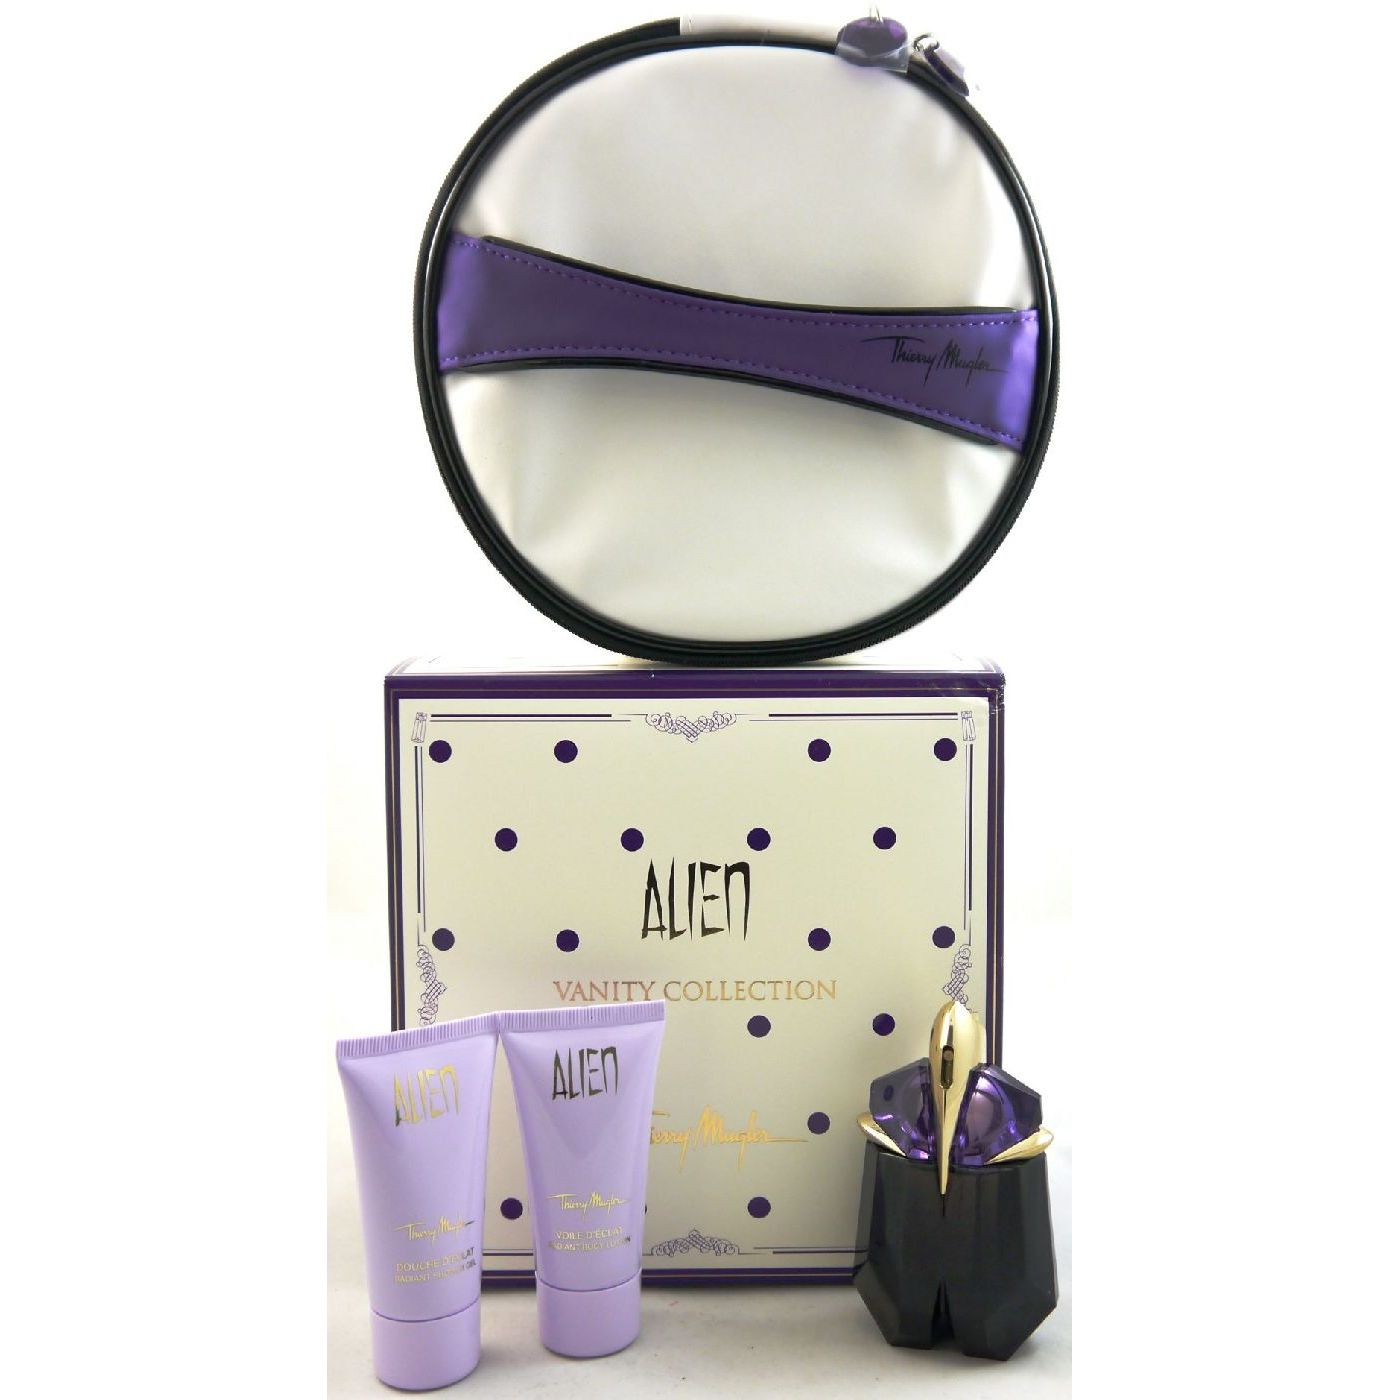 Bad Set Creme Thierry Mugler Alien Set 30 Ml Edp And 30 Ml Bl And 30 Ml Sg